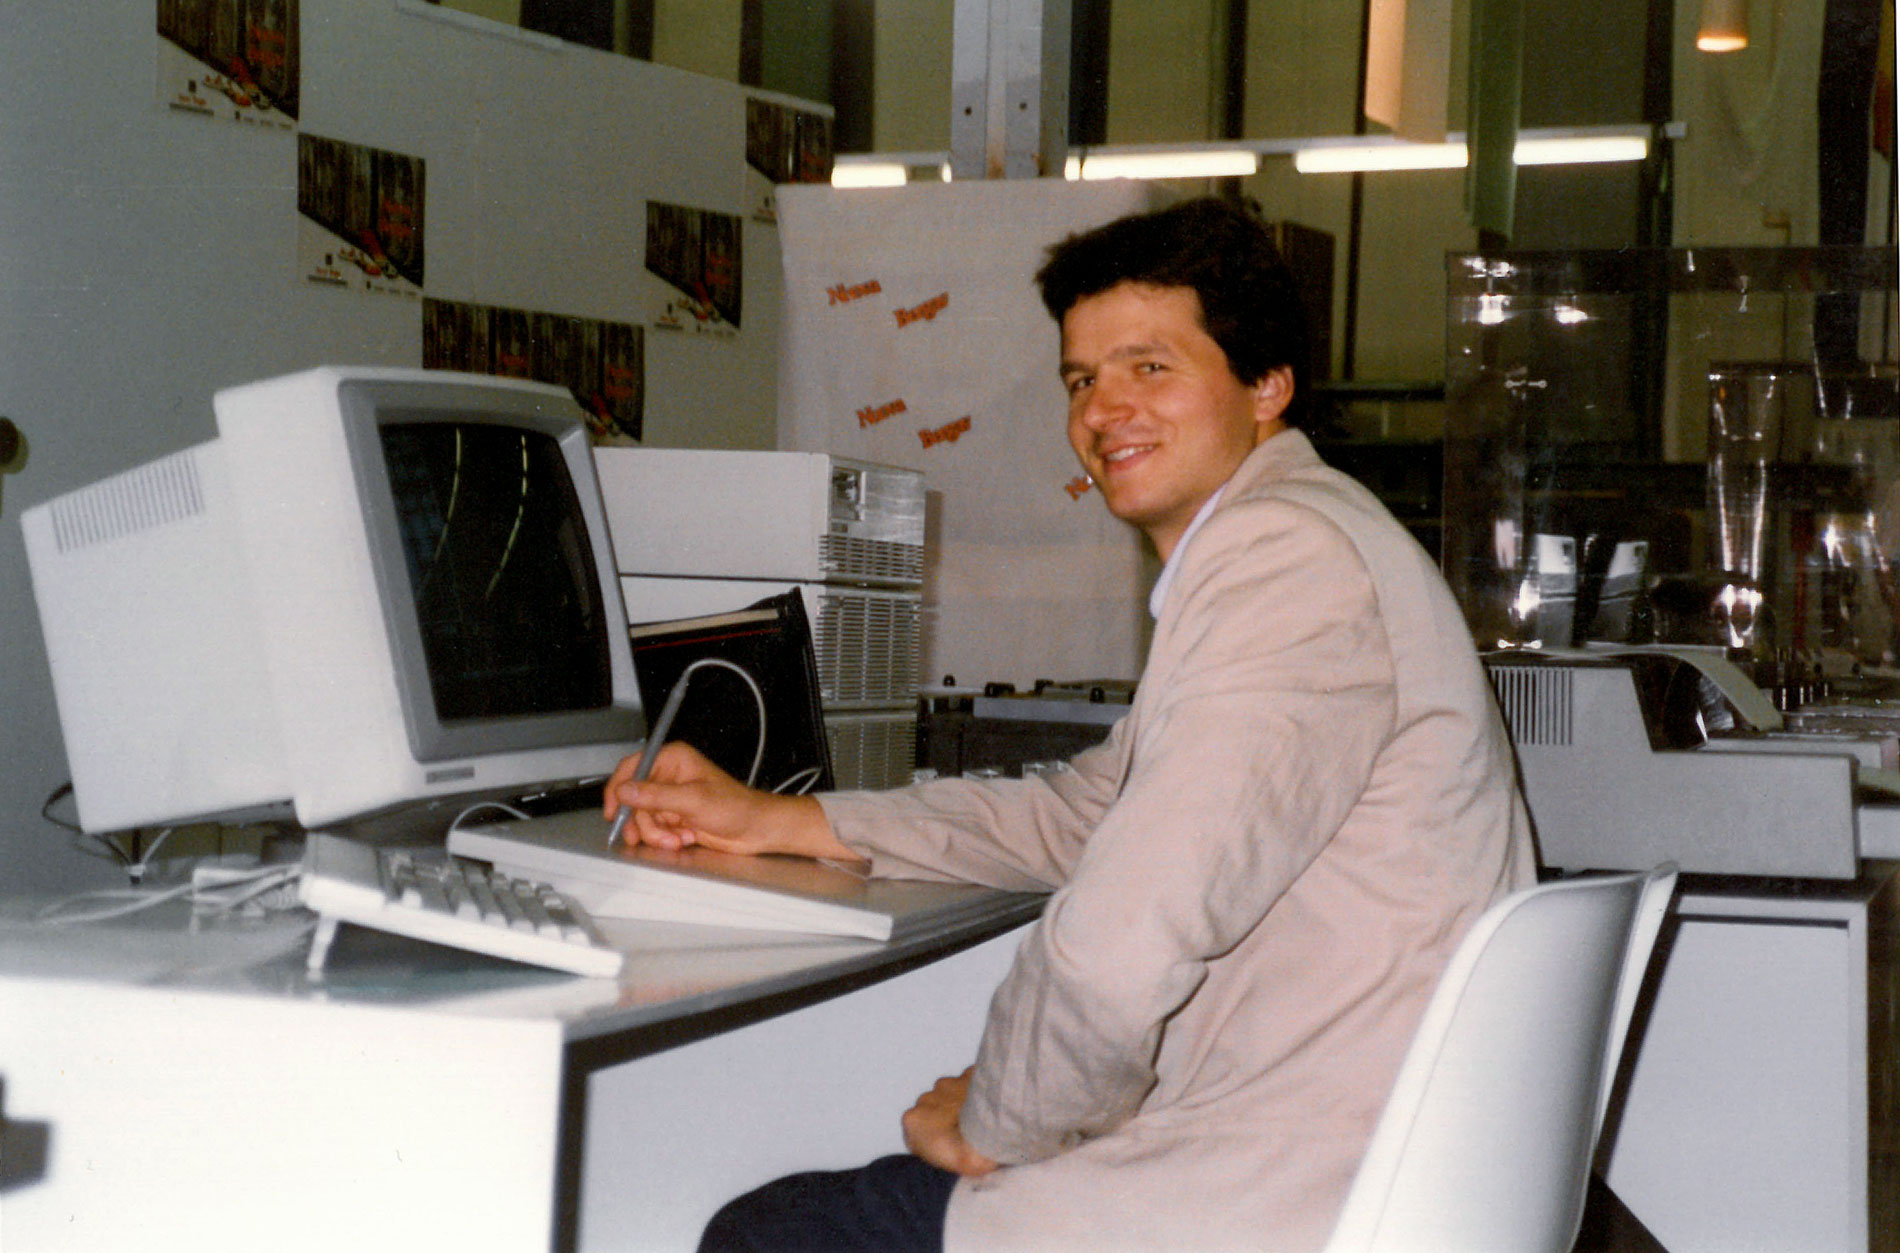 <span><b>1990</b>Claudio Franco goes solo, starting to provide design and pattern engineering services for third parties. </span>